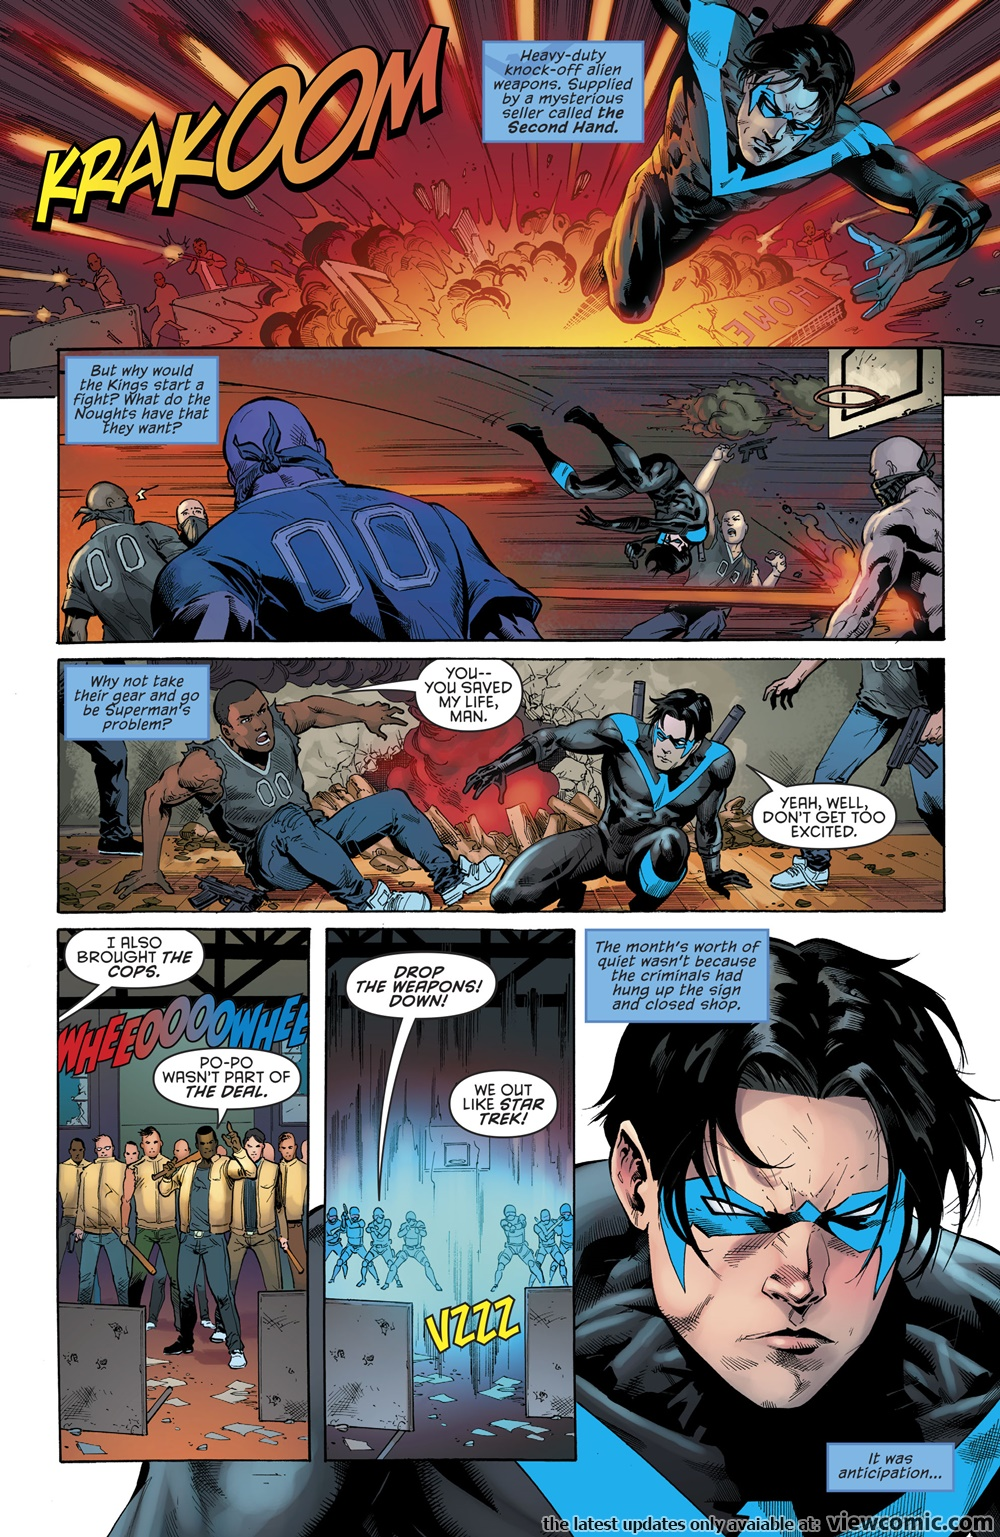 Nightwing v4 022 (2017)  | Vietcomic.net reading comics online for free